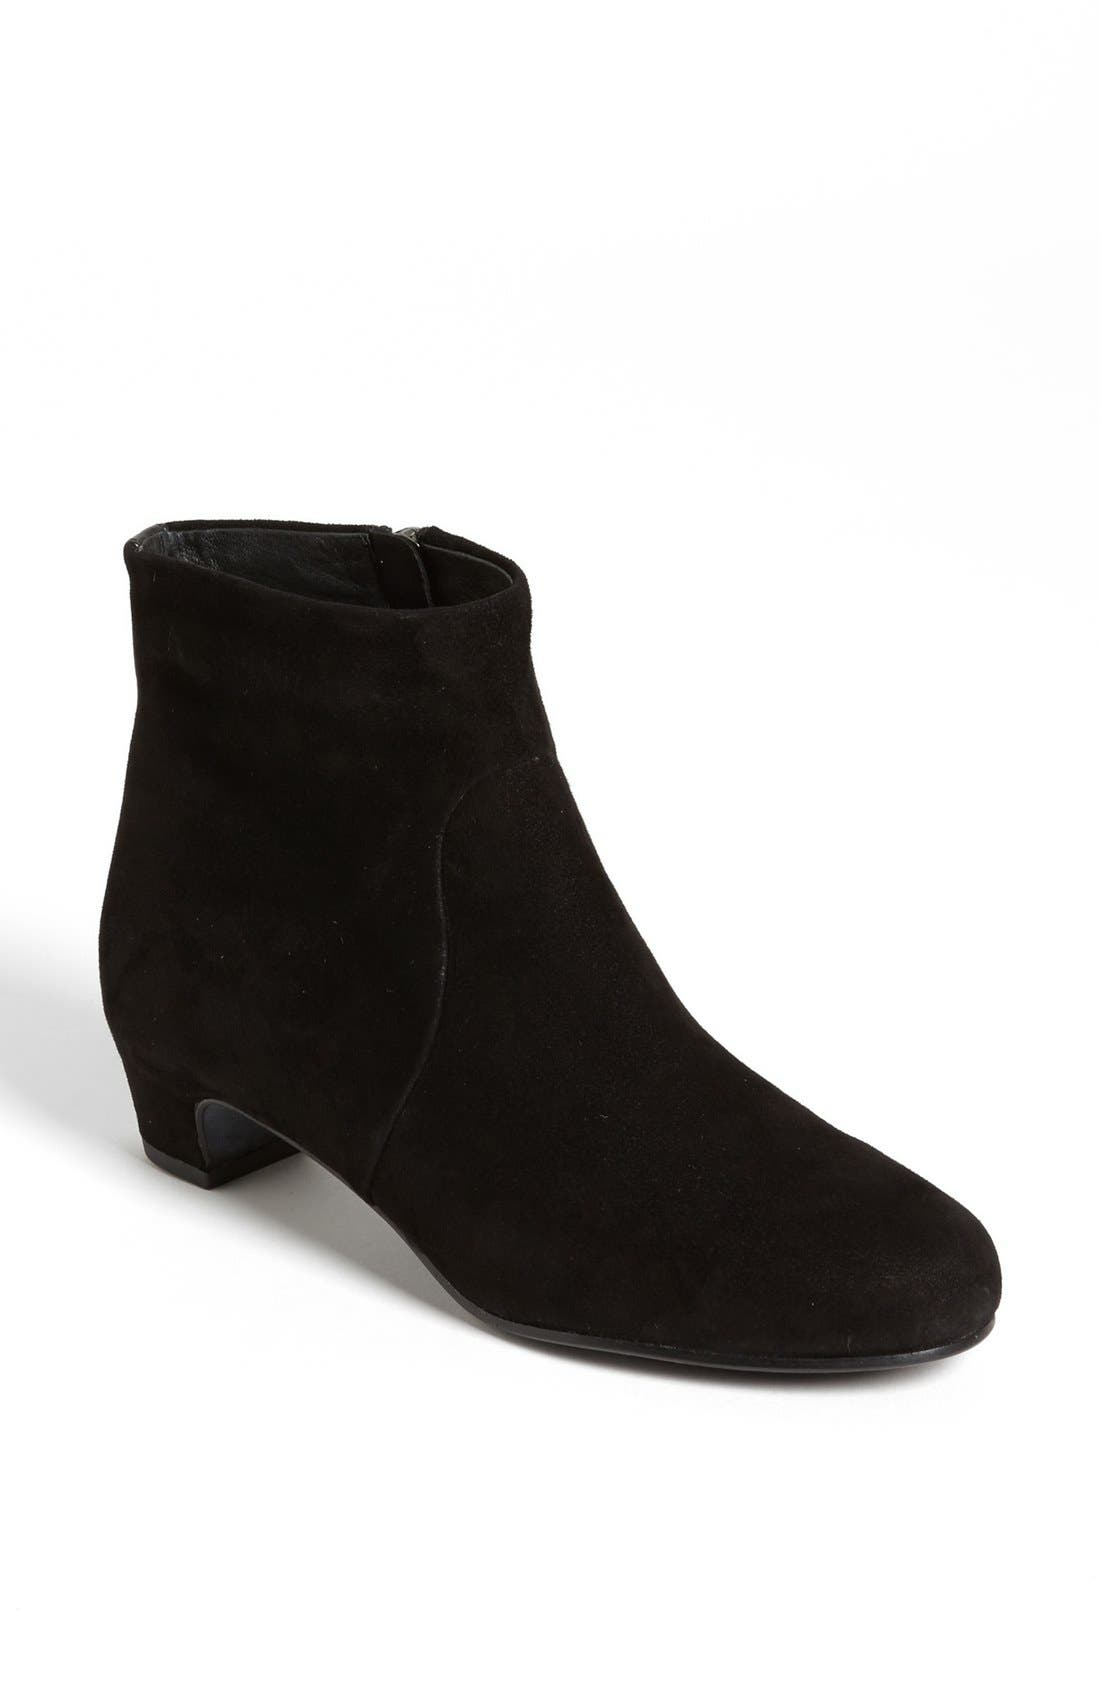 Alternate Image 1 Selected - Eileen Fisher 'Key' Bootie